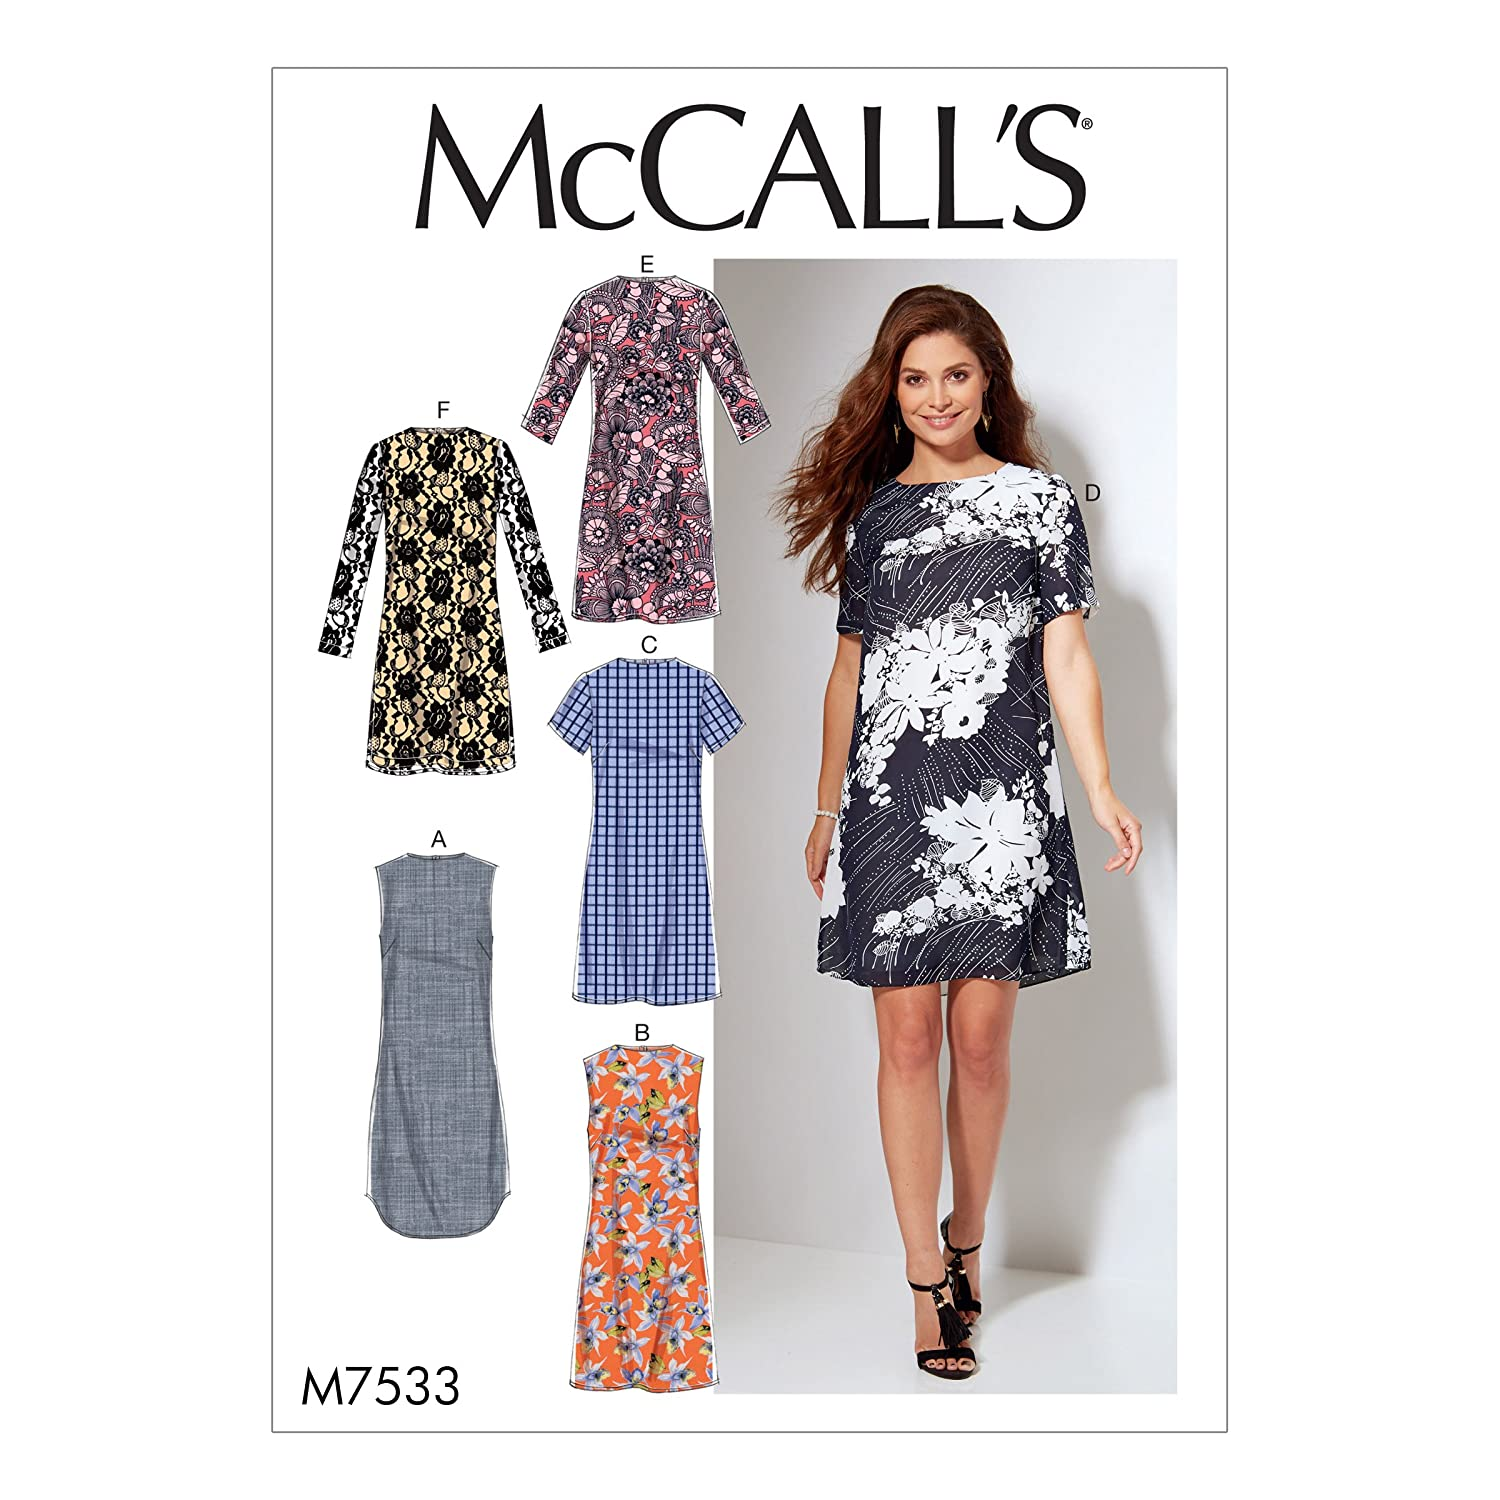 McCall's Patterns M7533RR0 Misses'/Women's Fitted Sheath Dresses Sewing Pattern, 18W-20W-22W-24W